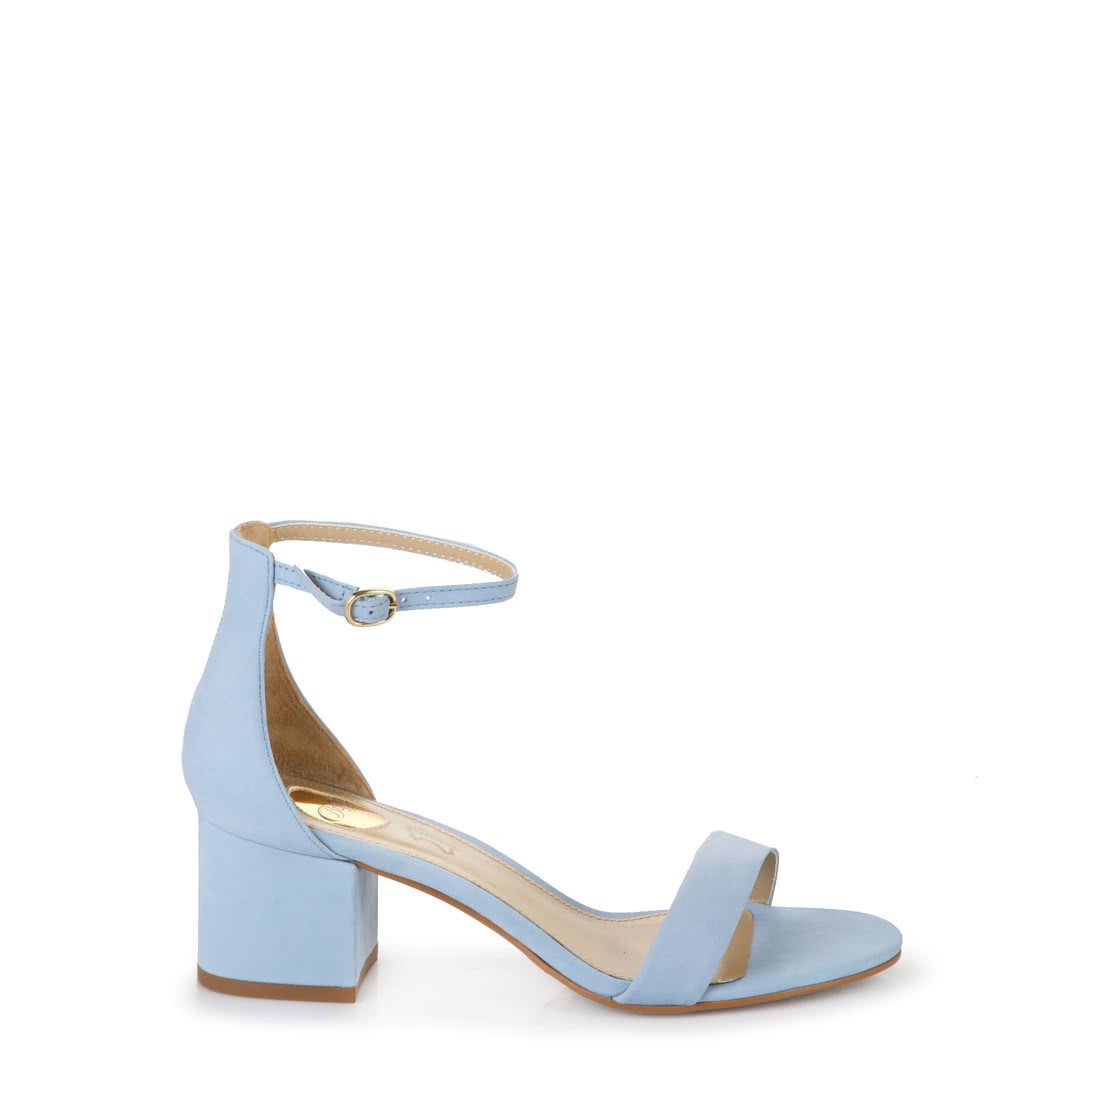 05fe69b03f Buffalo high-heeled sandals in light blue buy online in BUFFALO ...